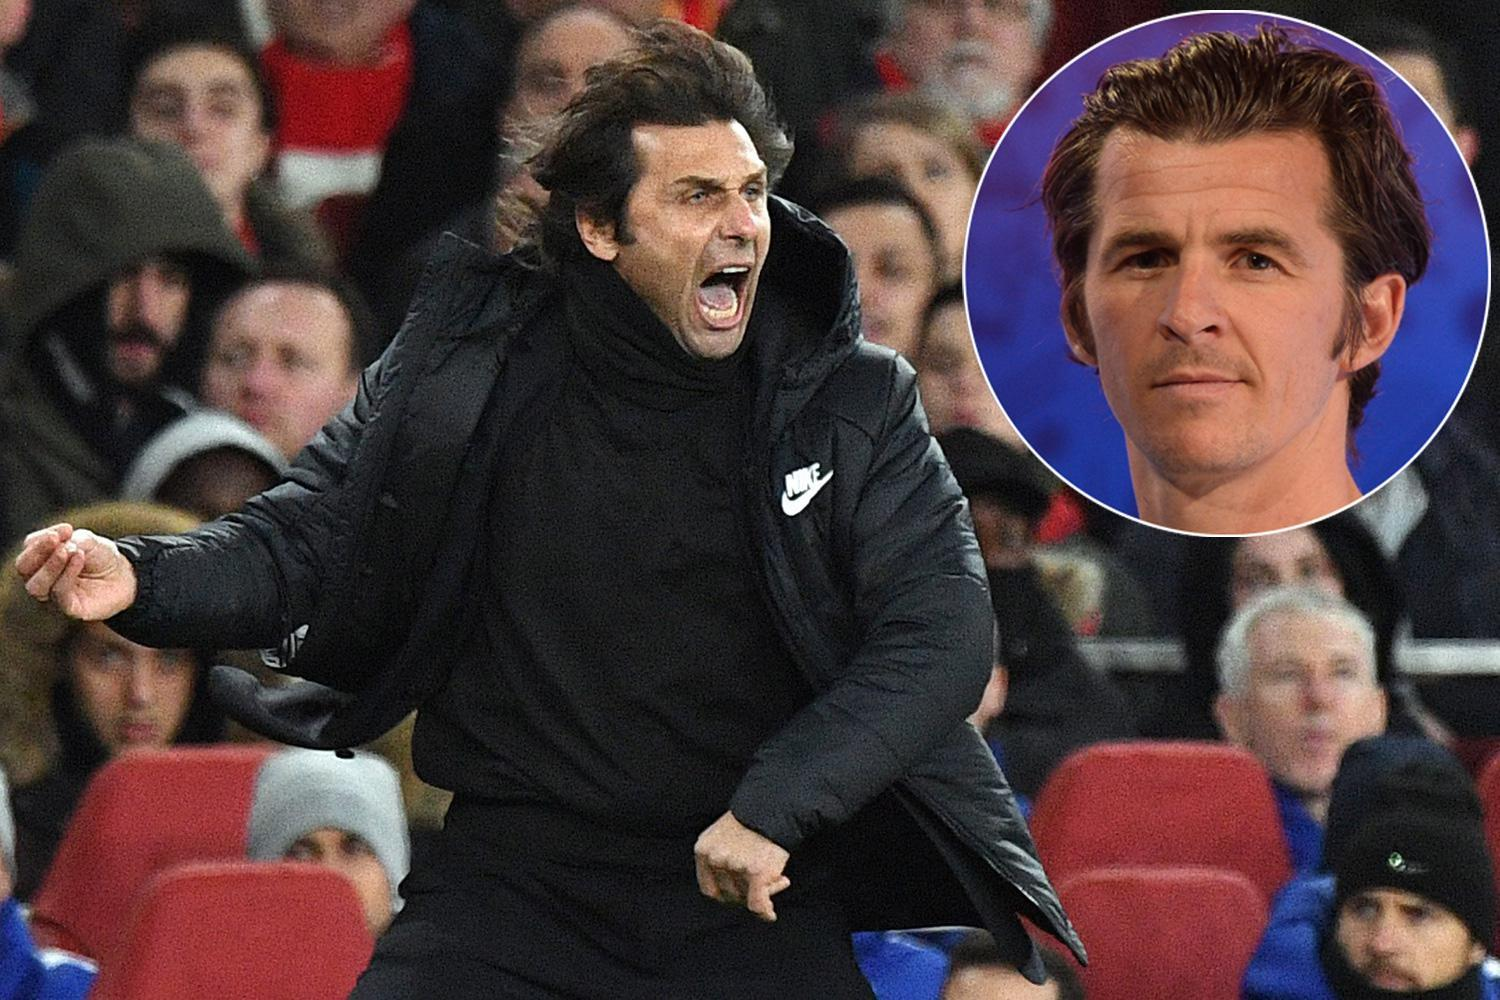 Joey Barton calls Antonio Conte 'soft lad' and 'petulant child' as he criticises Italian's touchline antics